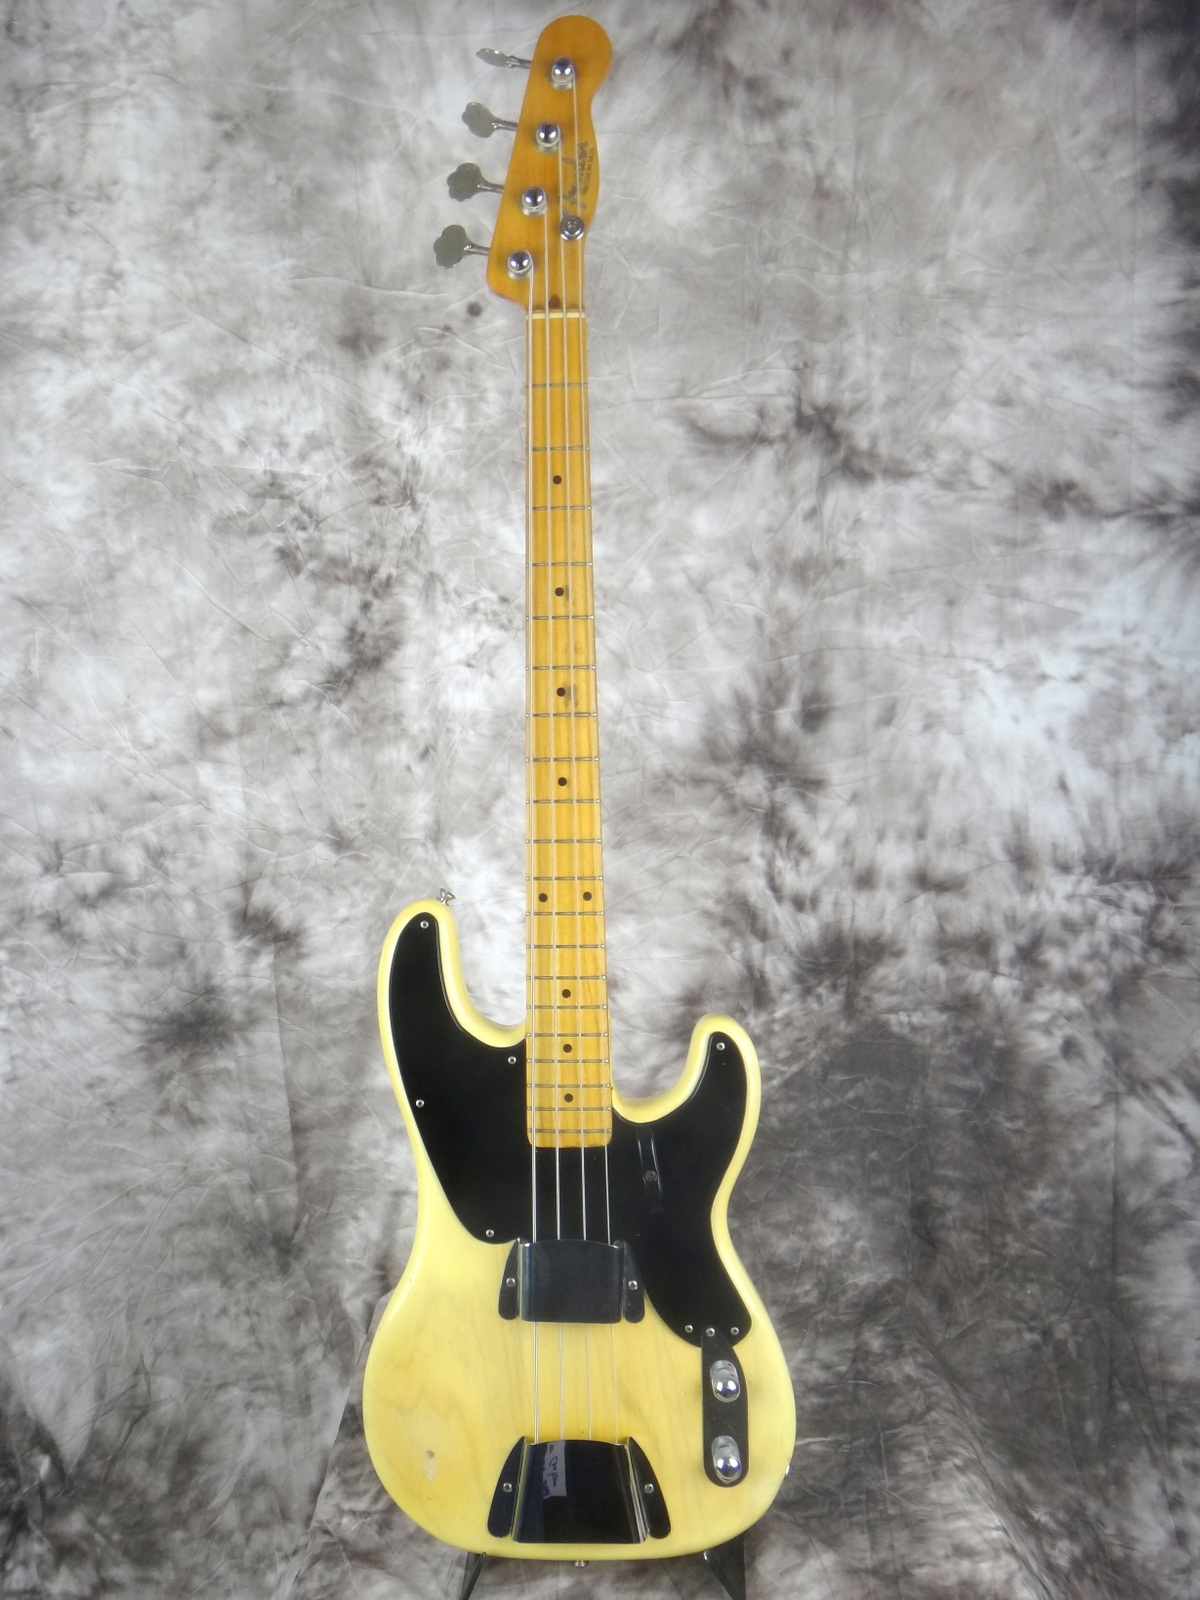 img/vintage/1599/Fender-Precision-Bass-1955-blond-001.JPG